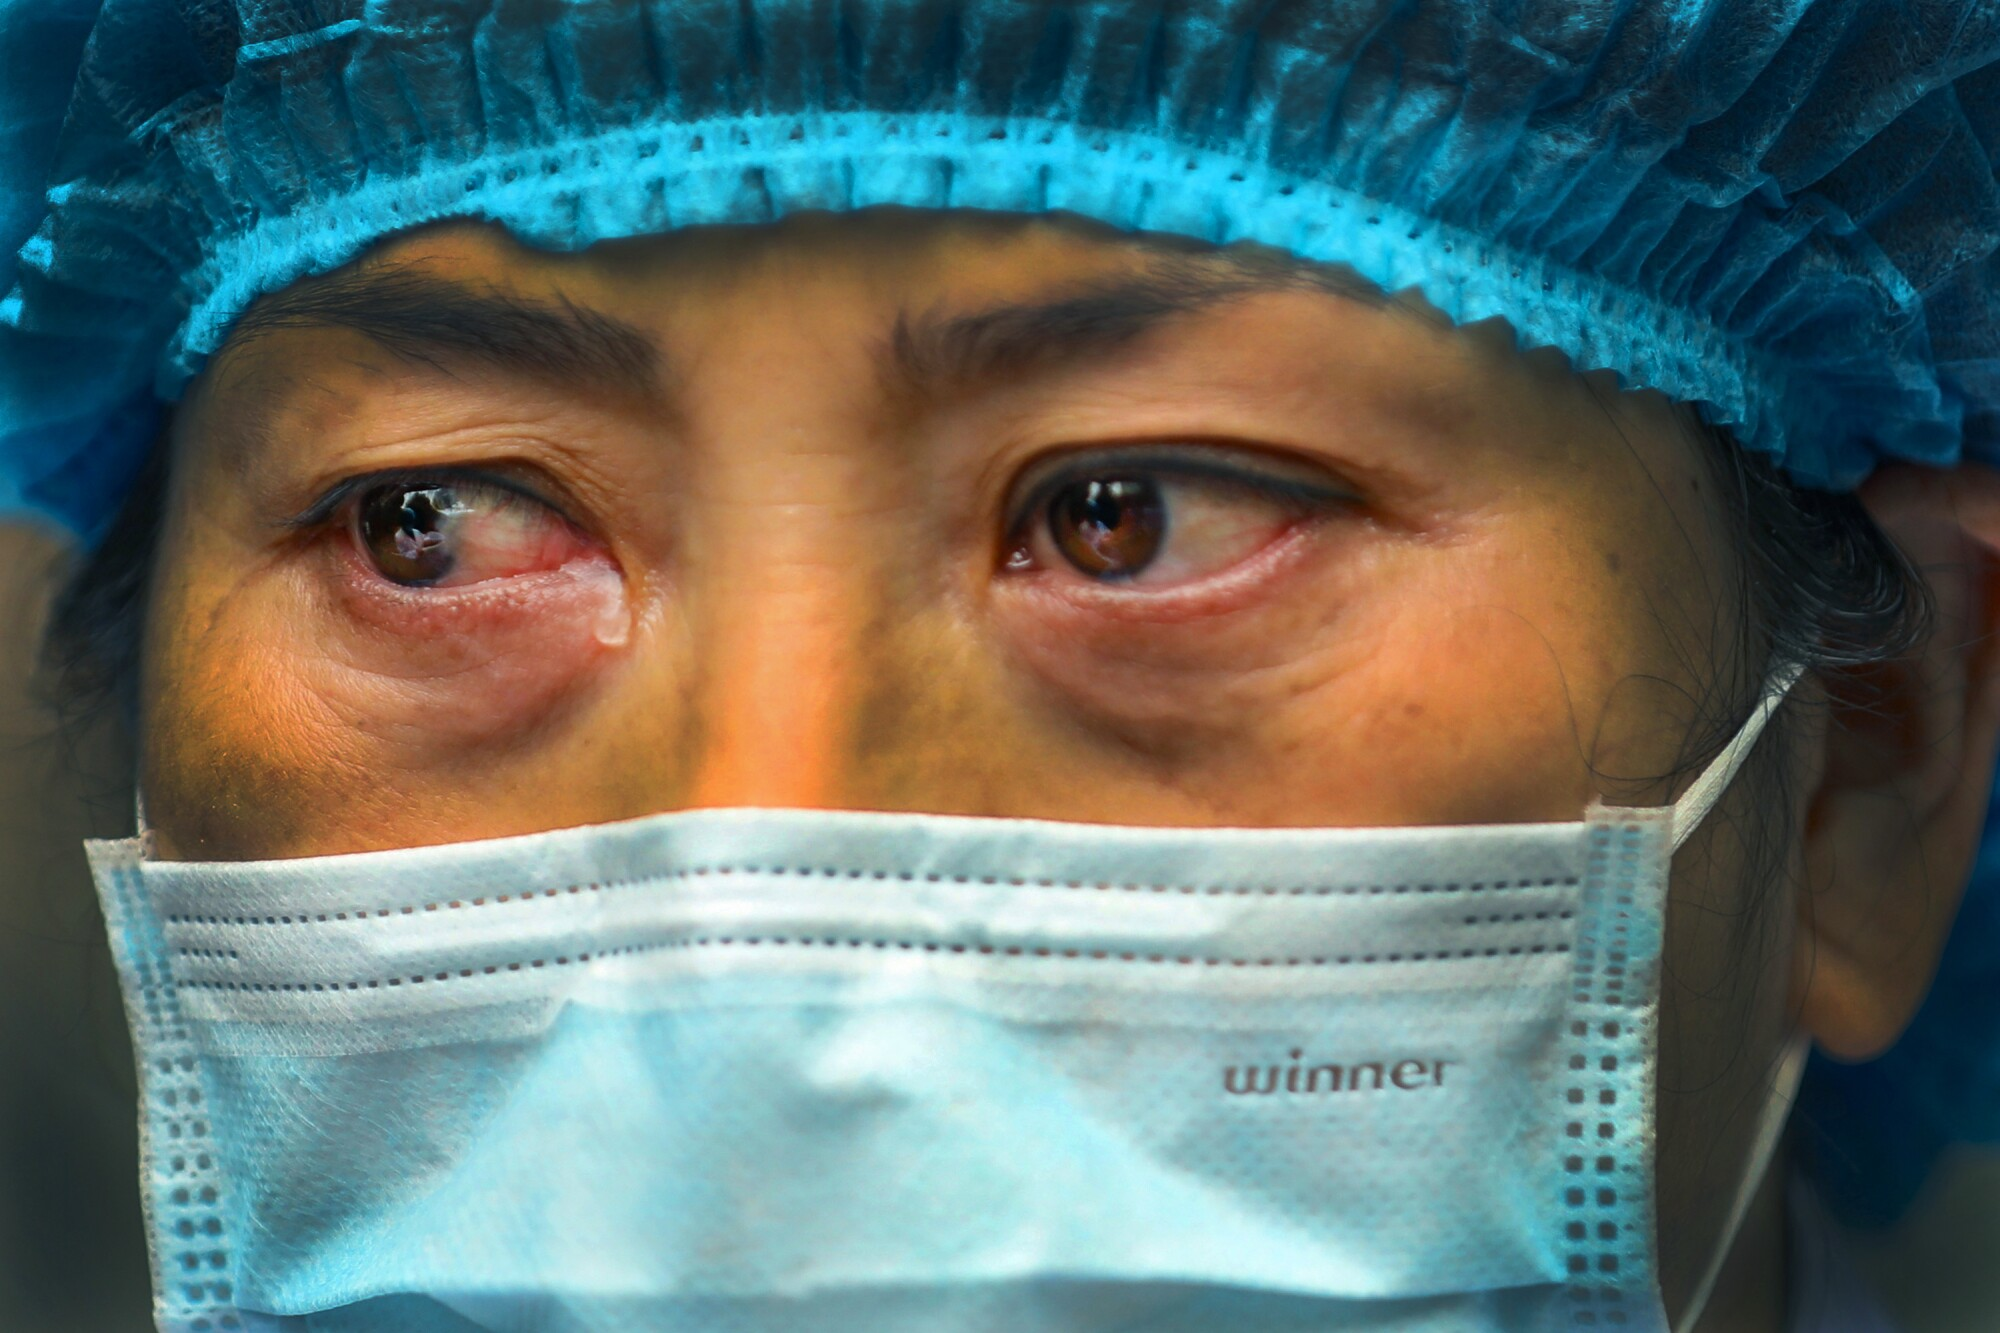 CHINA: A nurse sheds a tear while discussing the situation at Jinyintan Hospital in Wuhan in central China's Hubei province, where the coronavirus outbreak began, on Feb. 13.